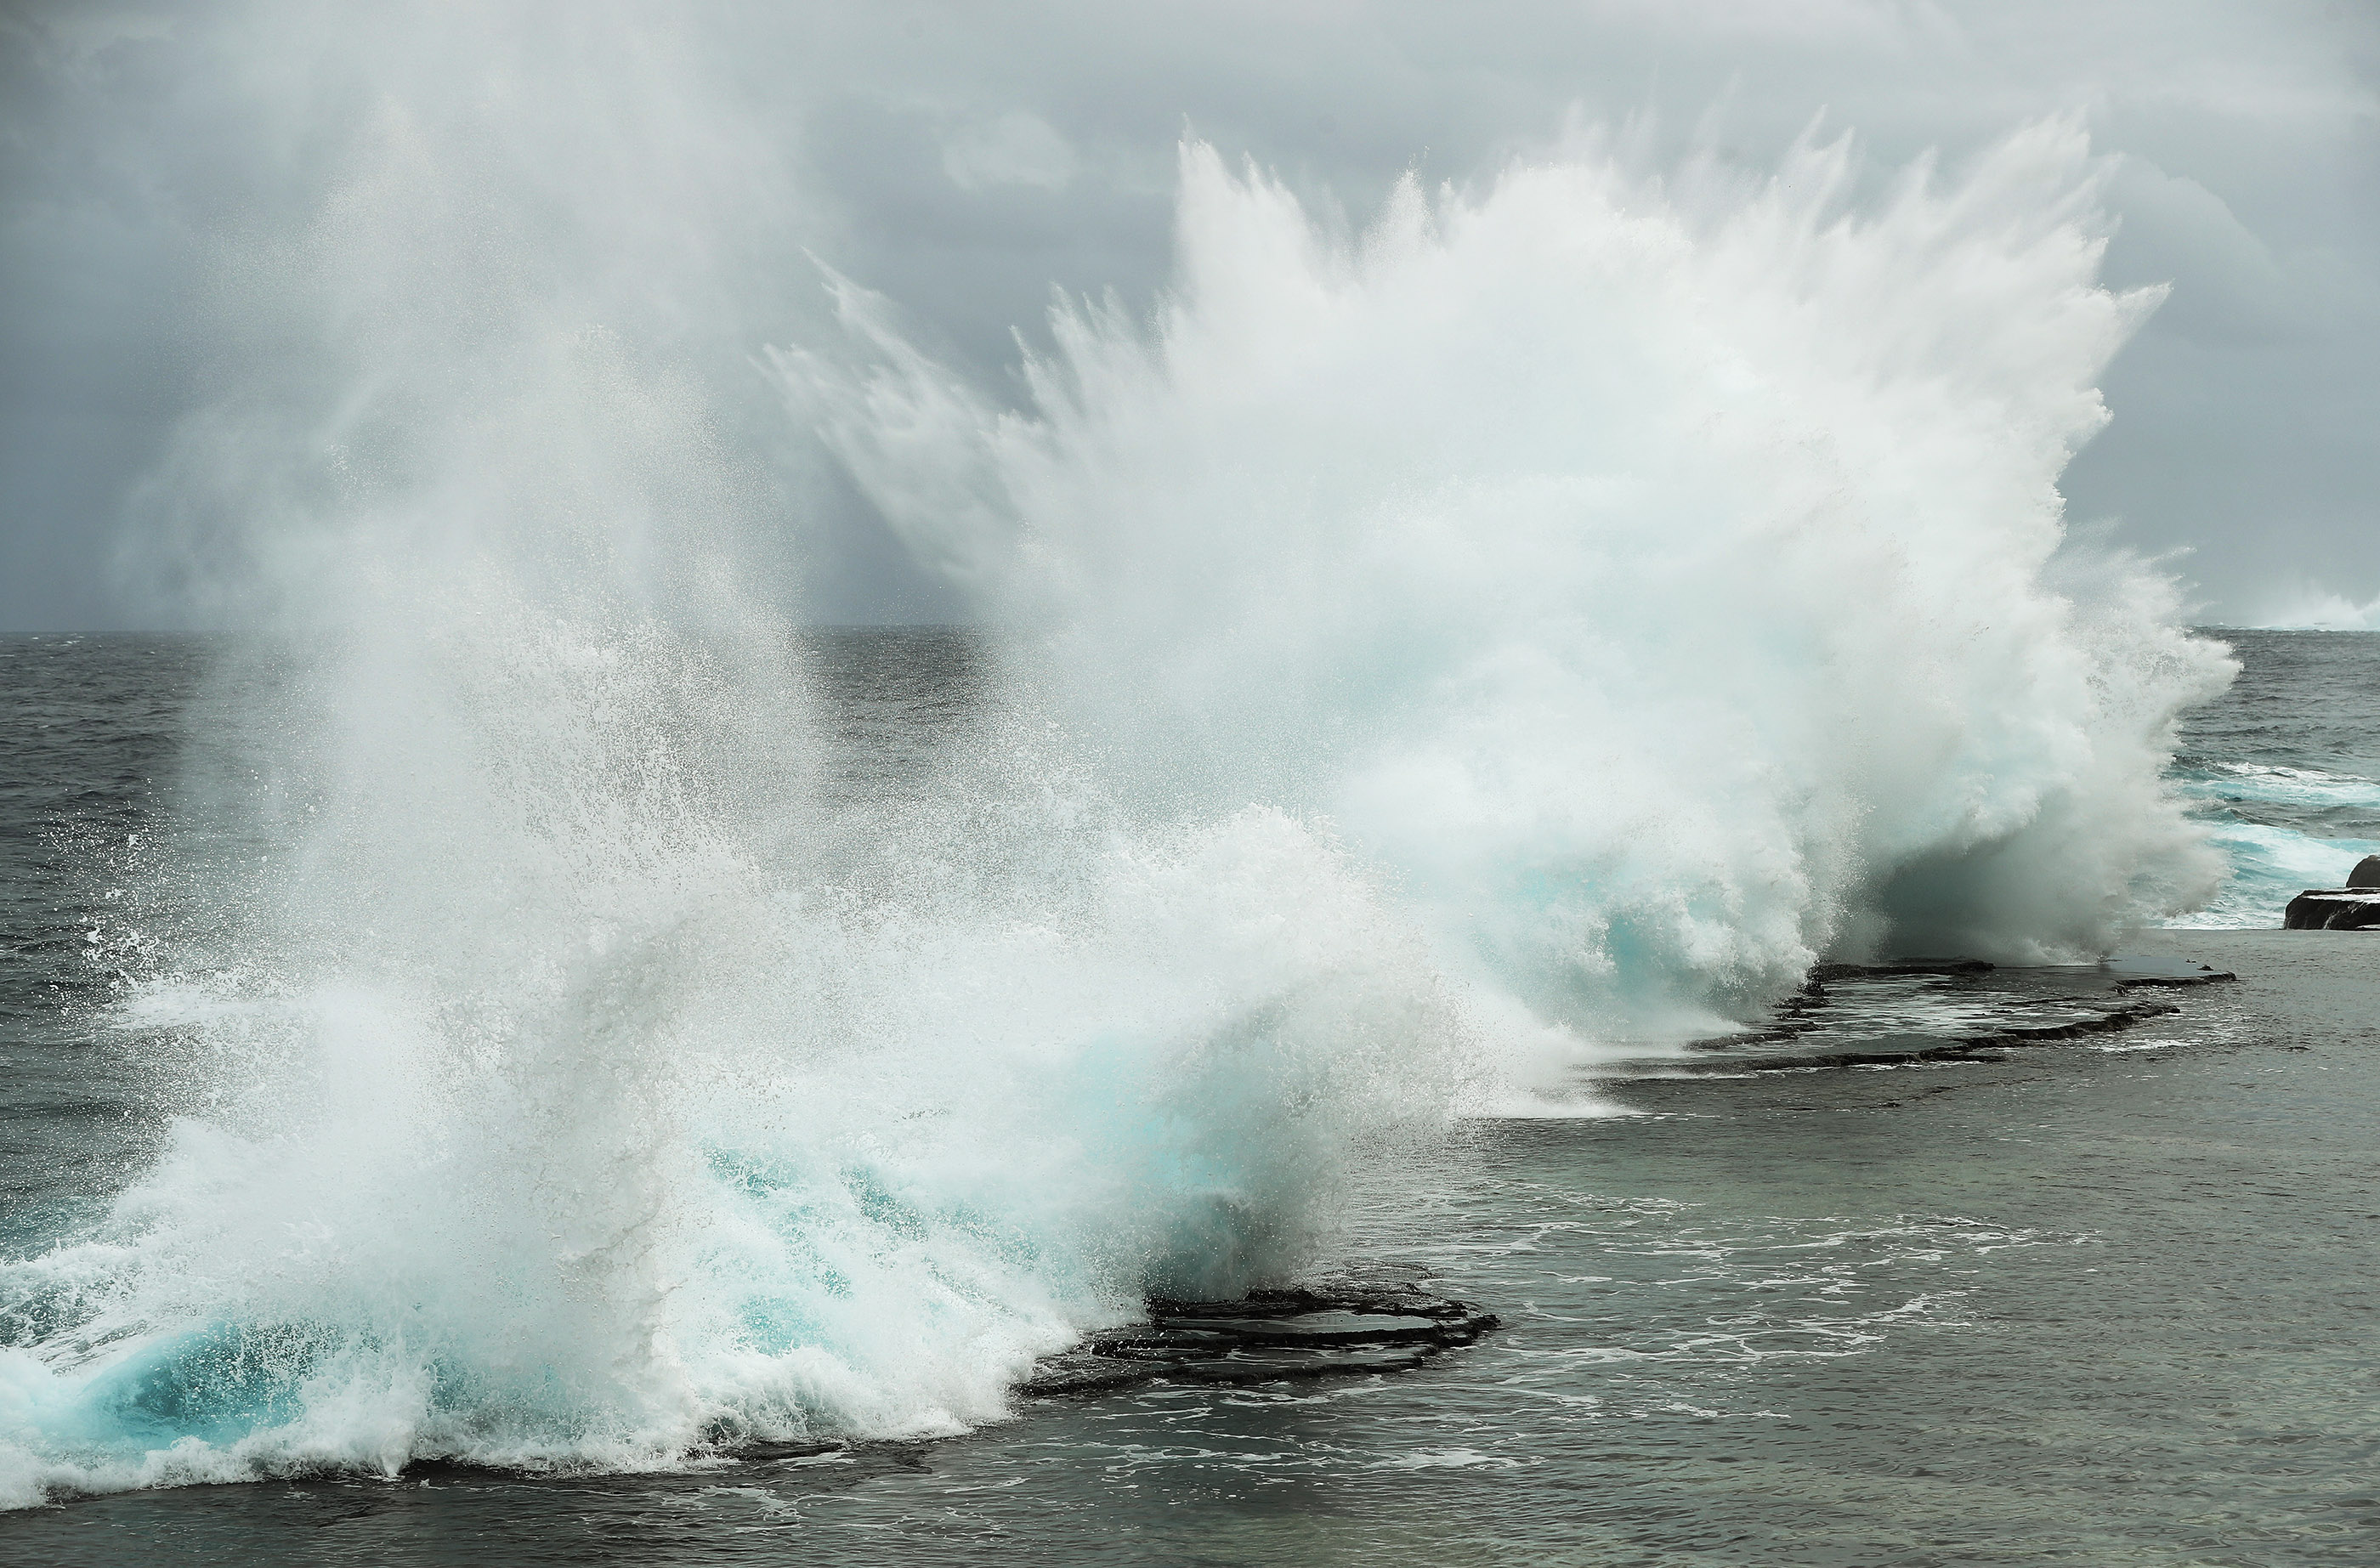 Mapu 'A Vaea blow holes in Tonga on May 23, 2019.